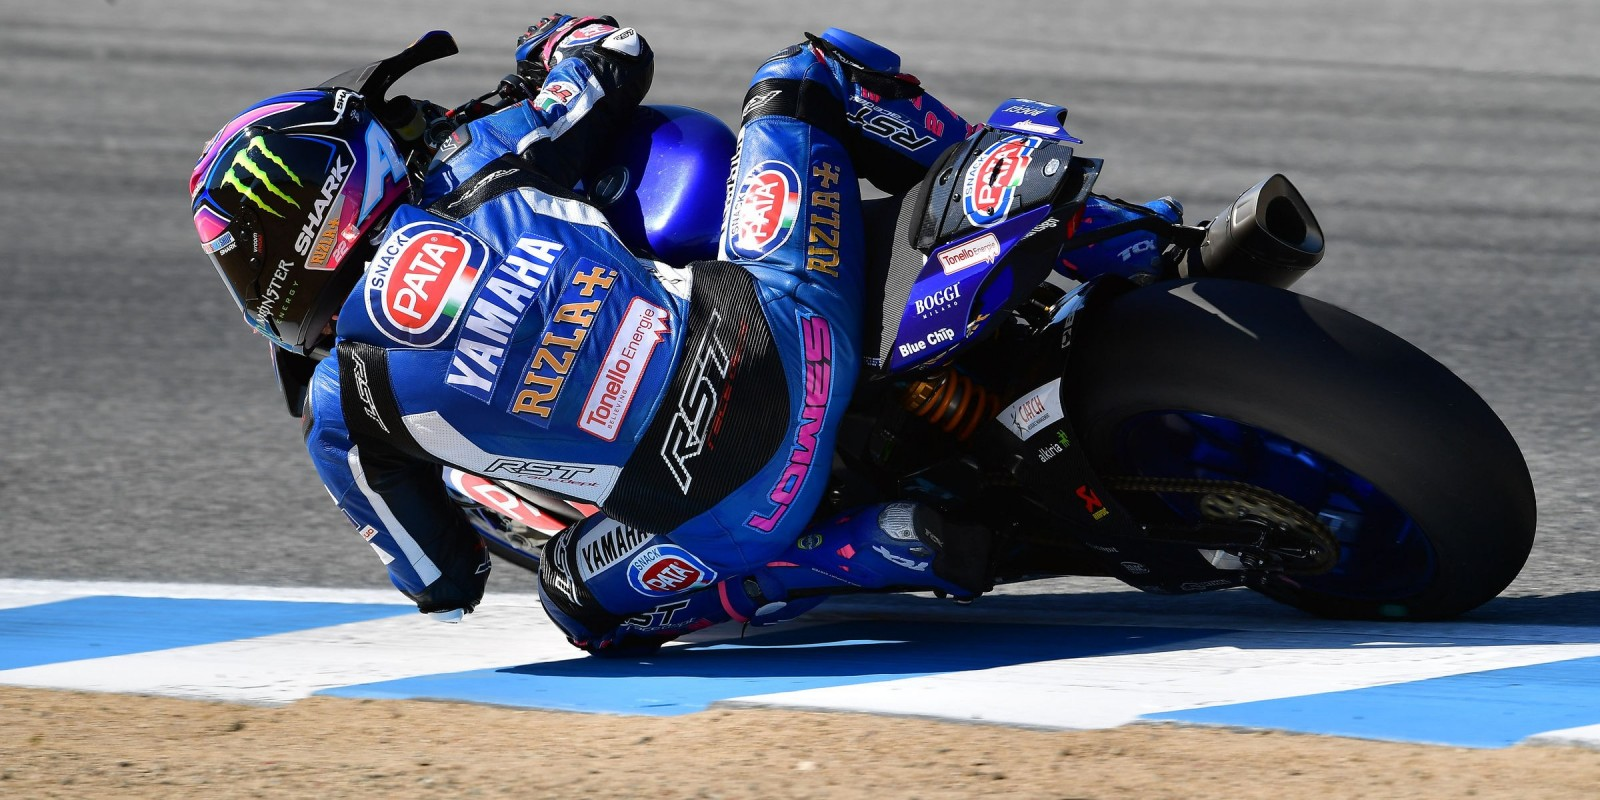 Alex Lowes at the 2017 World Superbike Geico US Round